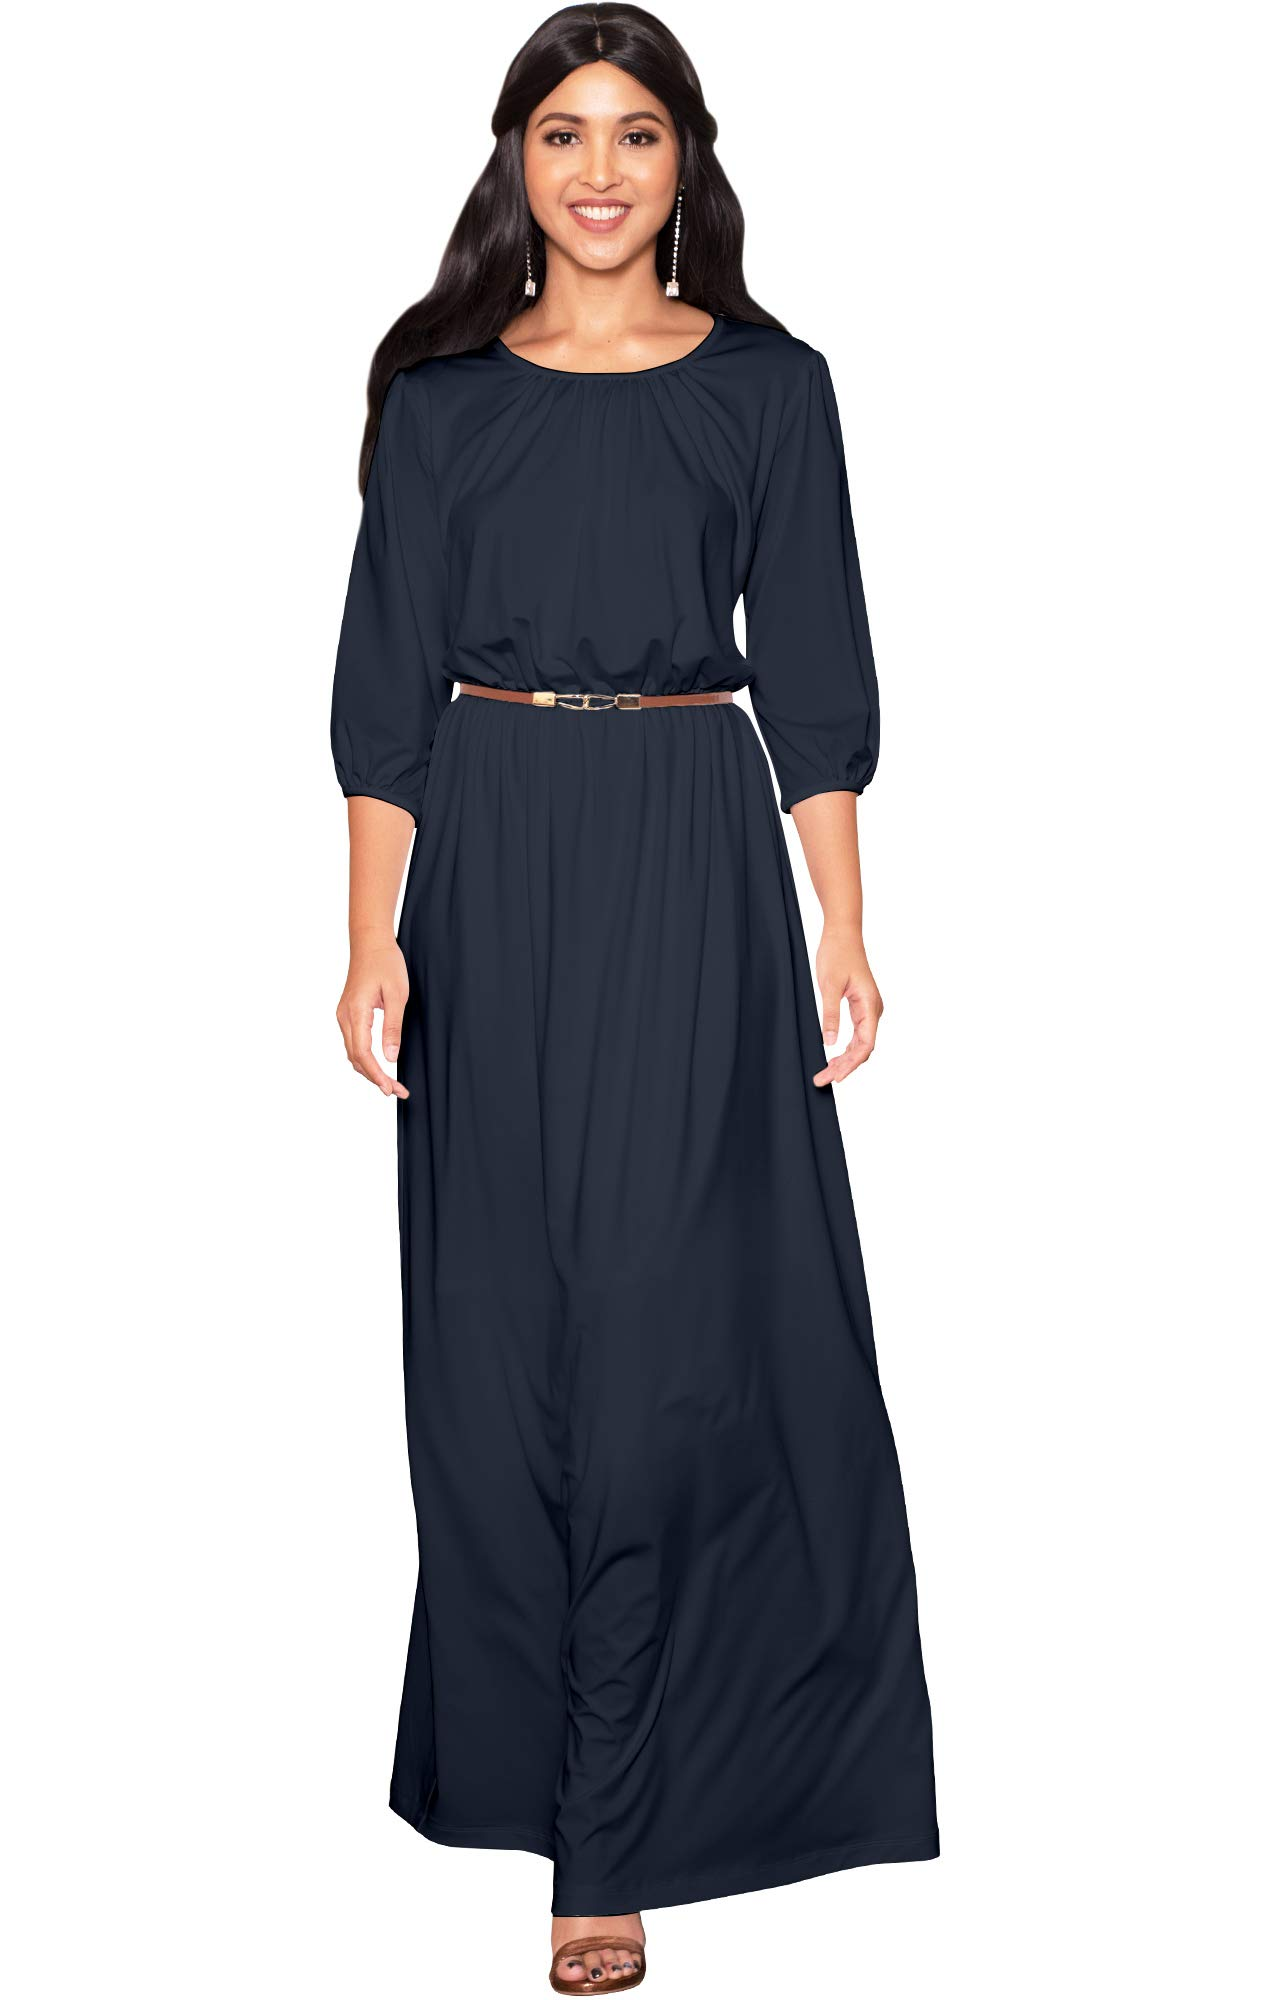 eeccfce6852b KOH KOH Plus Size Women Long 3/4 Sleeve Sleeves Vintage Autumn Fall Winter  Flowy Formal Evening Work Office Modest Peasant Cute Abaya Gown Gowns Maxi  Dress ...